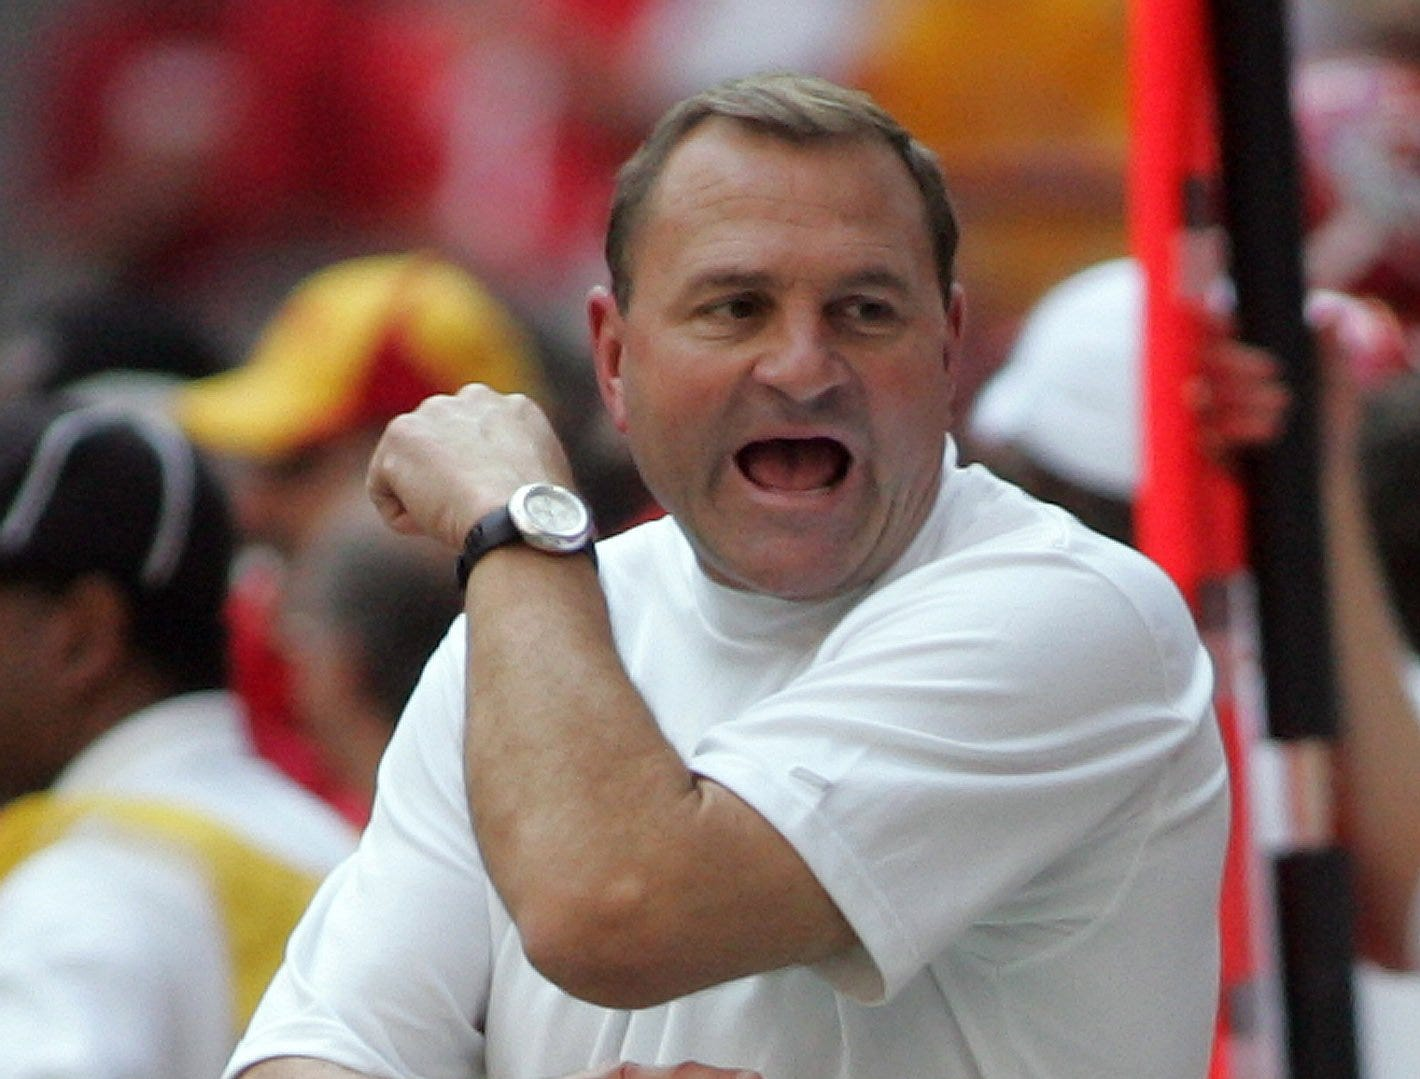 Iowa State coach Dan McCarney's team put together a game effort but couldn't quite match Texas Christian in the 2005 Houston Bowl. The three-point loss was the fourth close defeat for the Cyclones, who finished at 7-5.